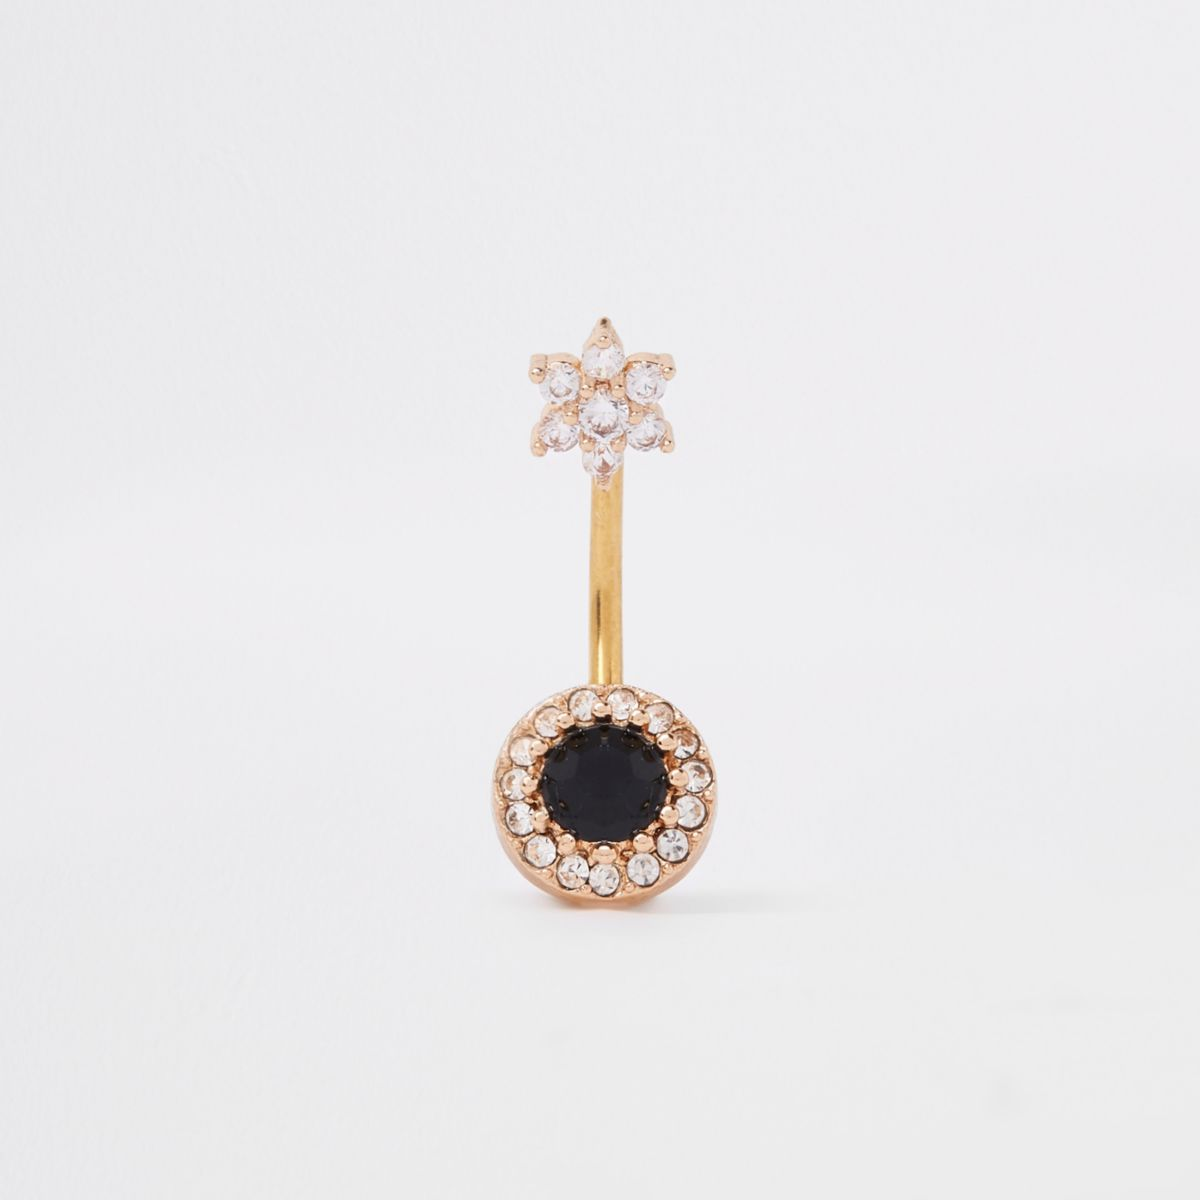 Black gold tone cubic zirconia belly bar